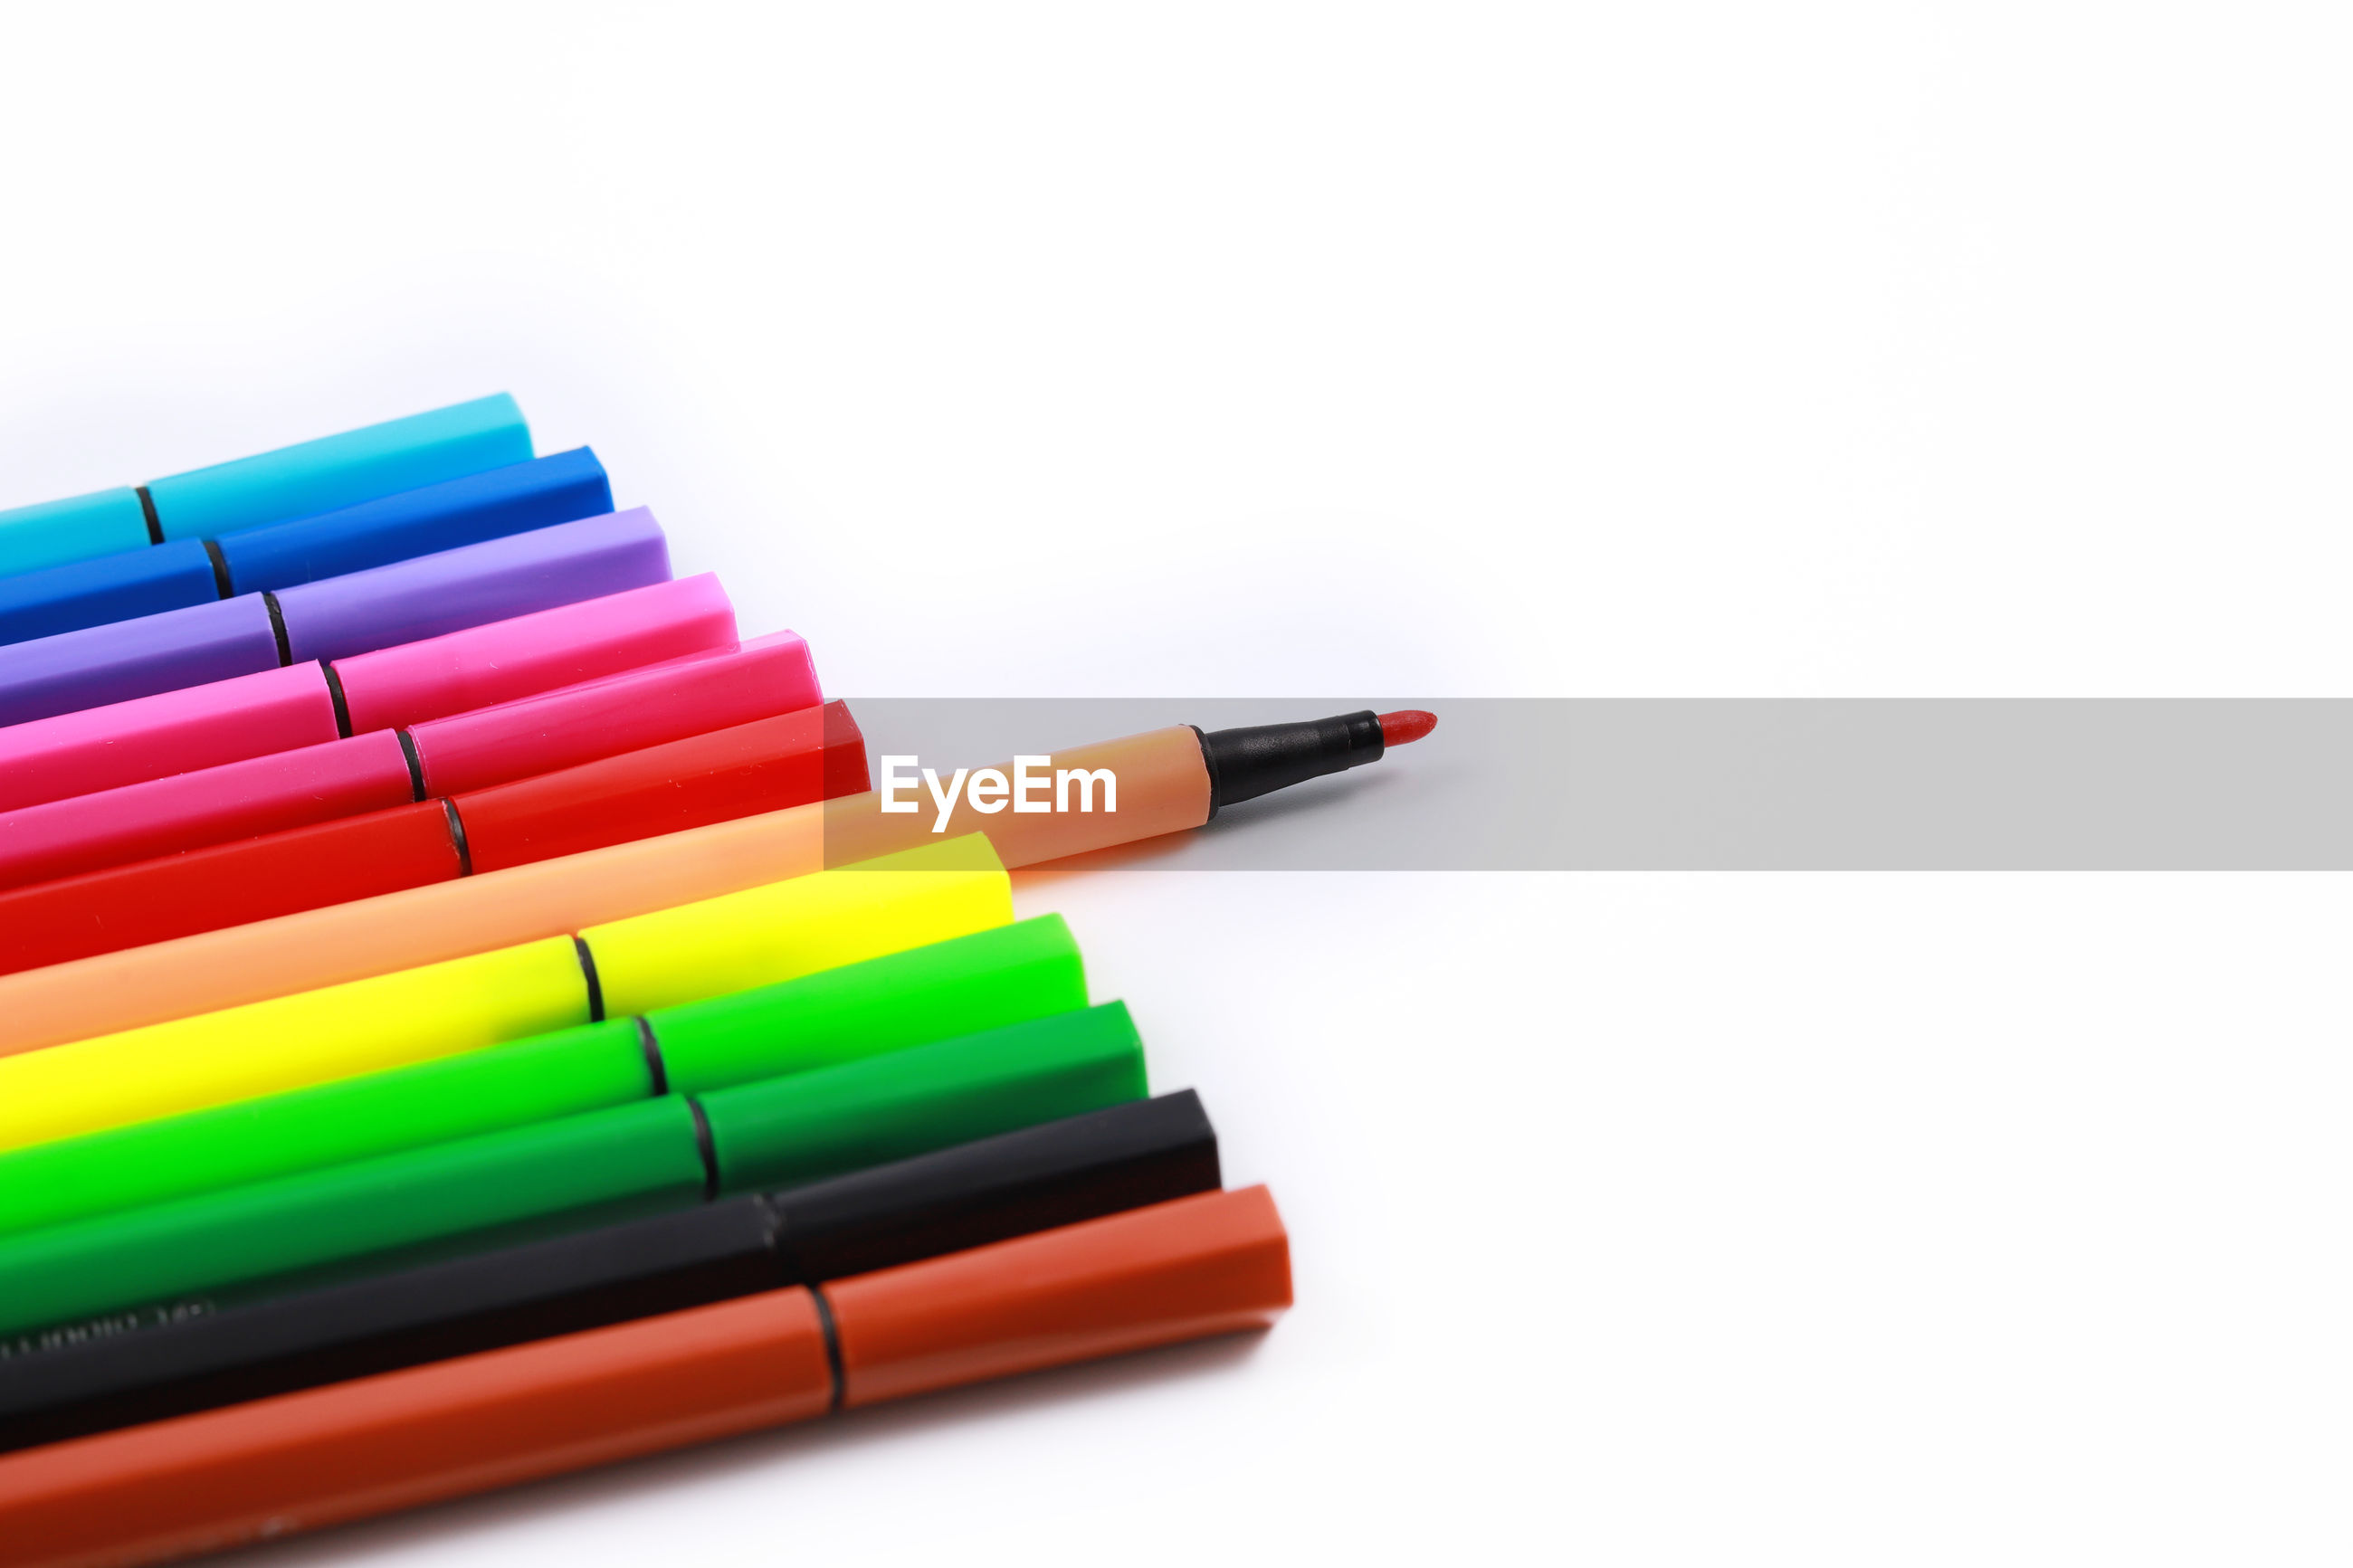 Close-up of colorful felt tip pens on white background